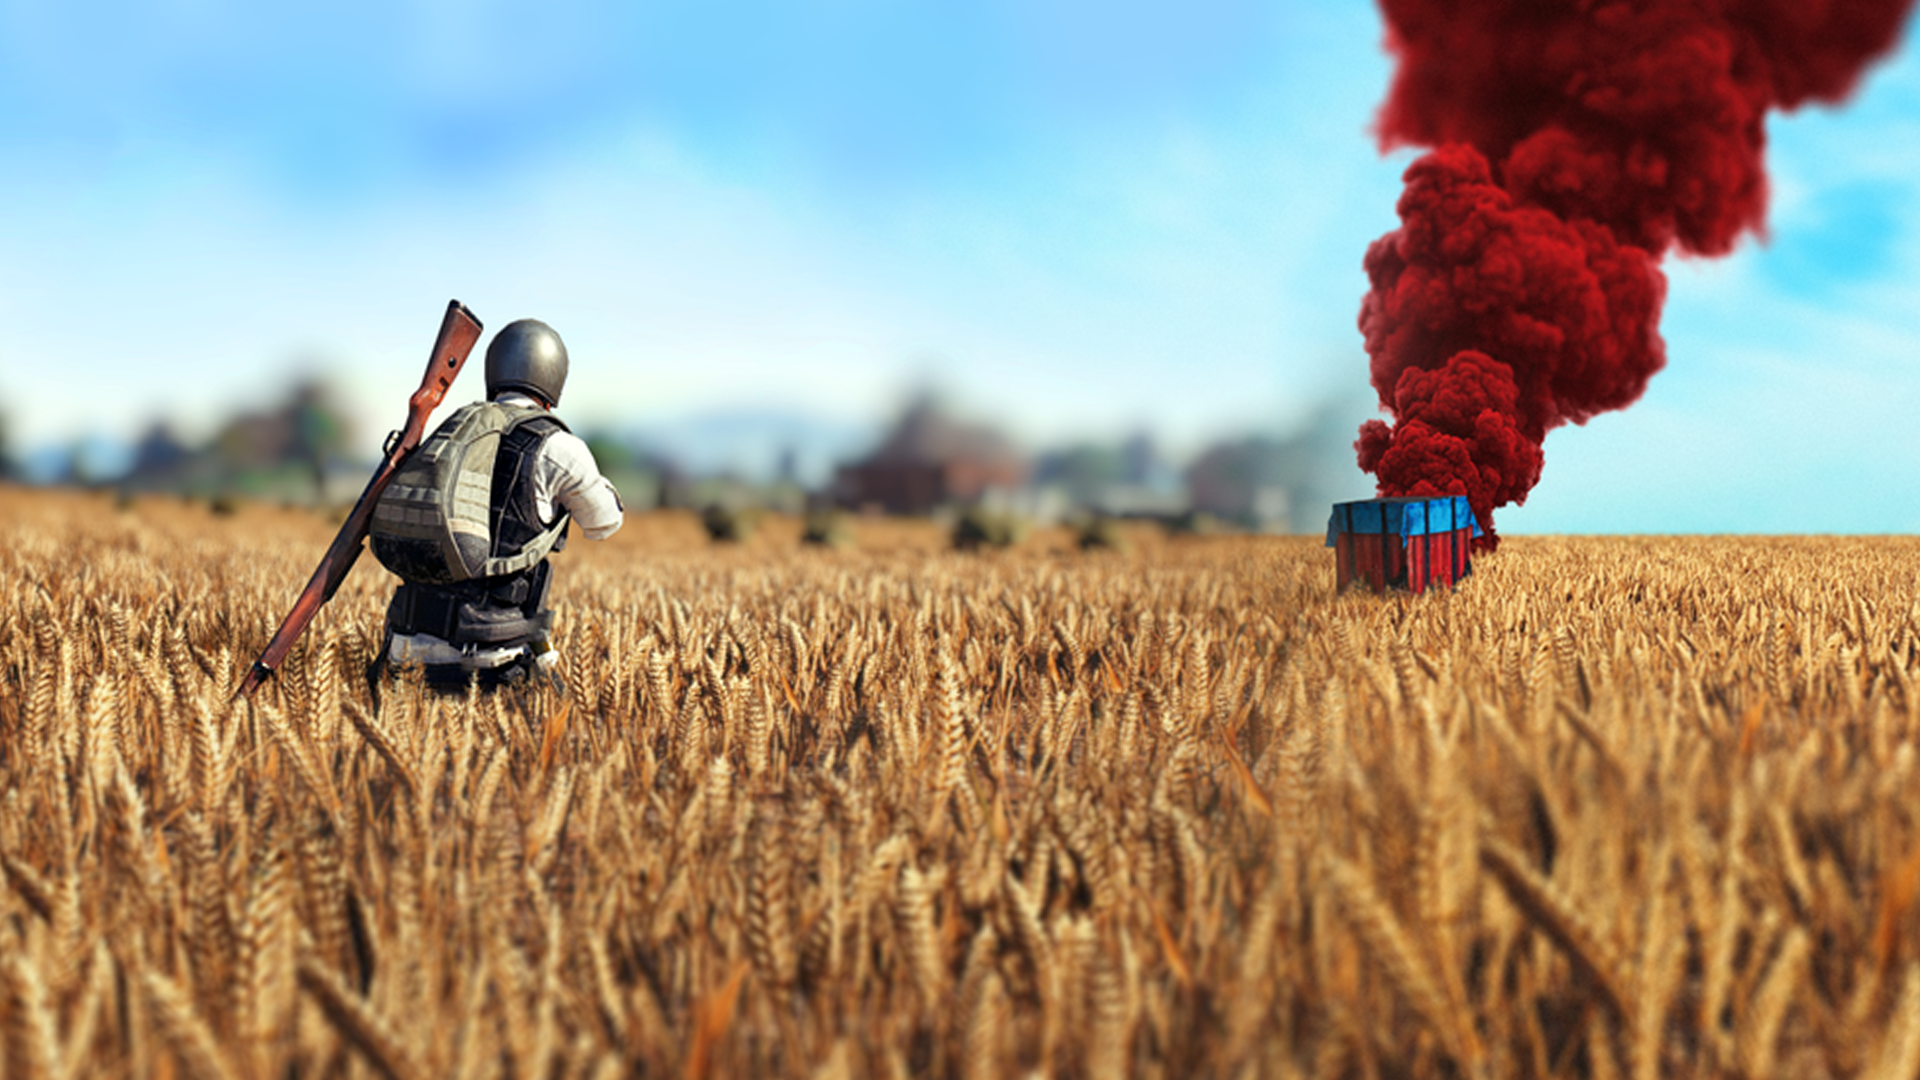 pubg wallpaper 1920x1080: Pubg HD Wallpaper